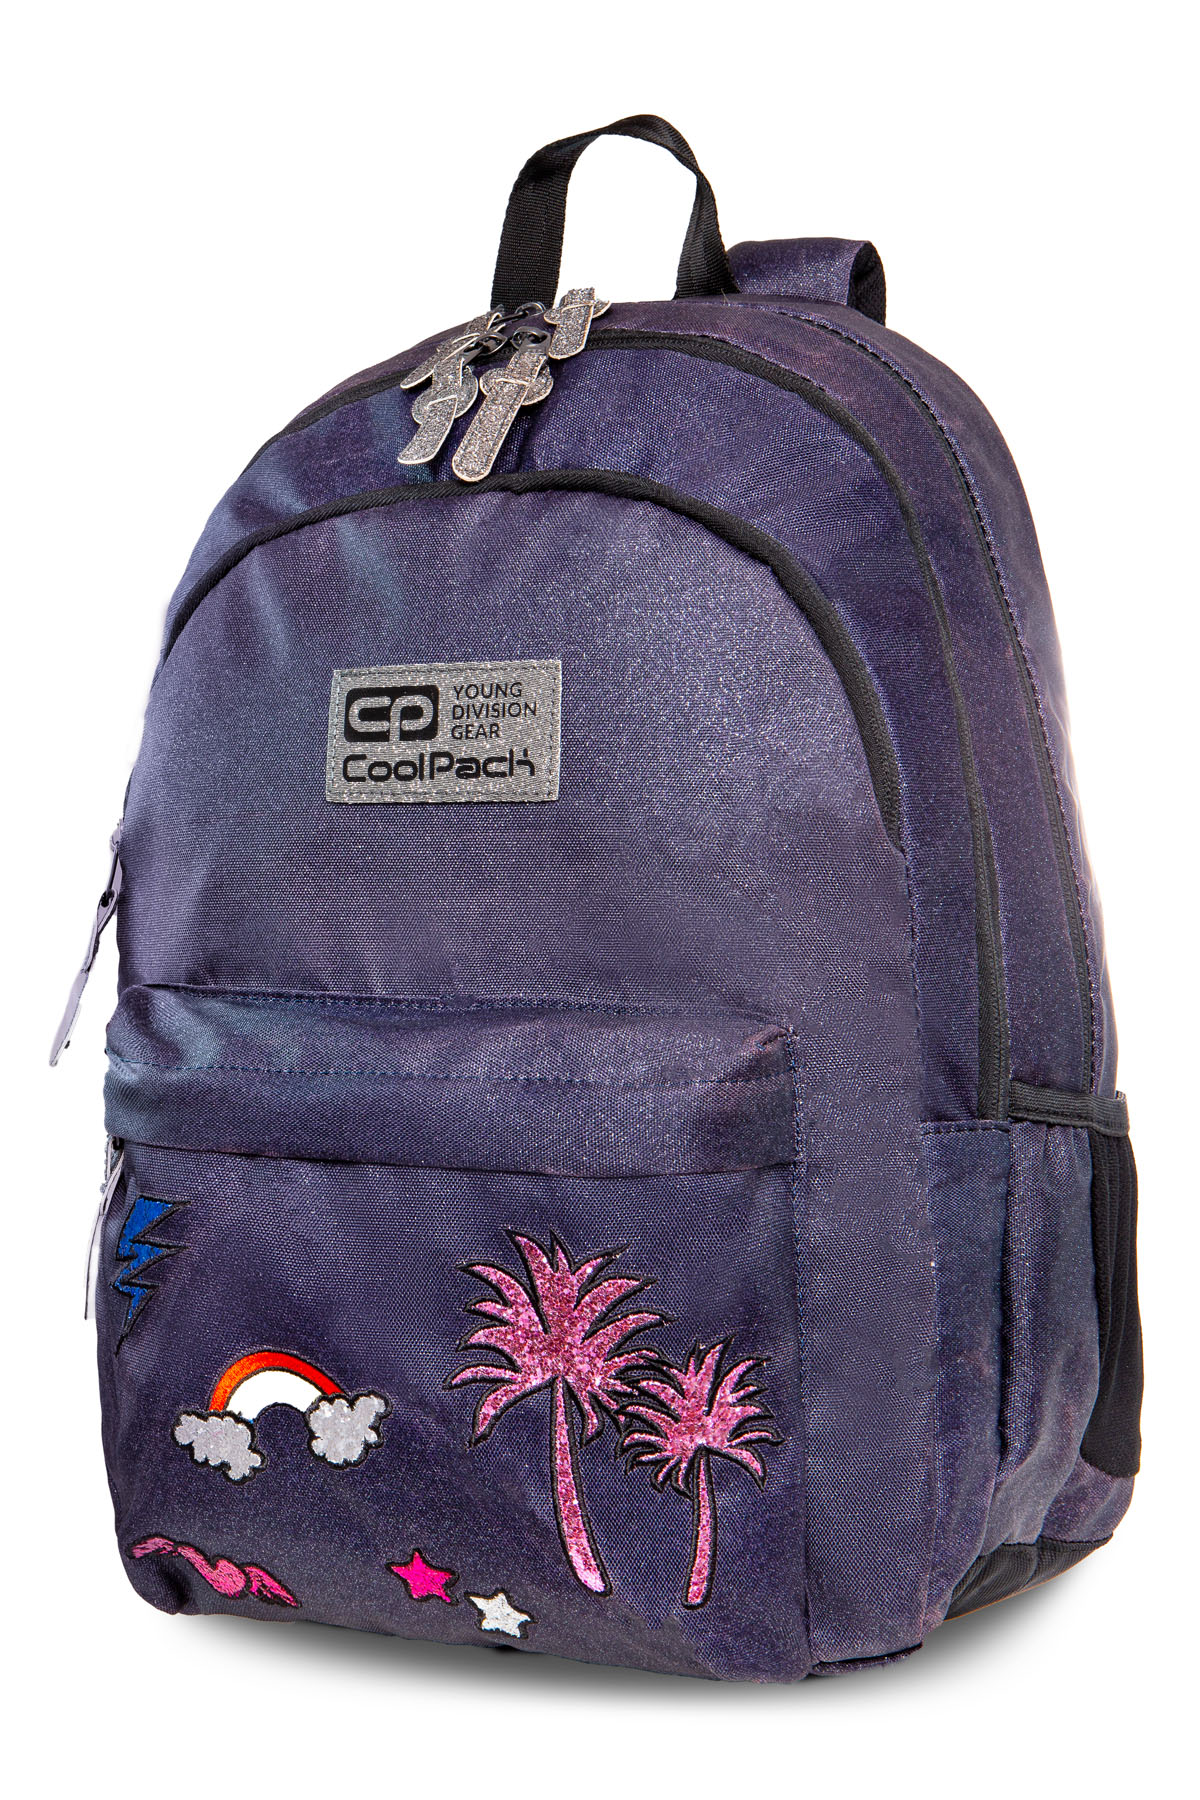 Coolpack - hippie - youth backpack - sparkling badges jeans